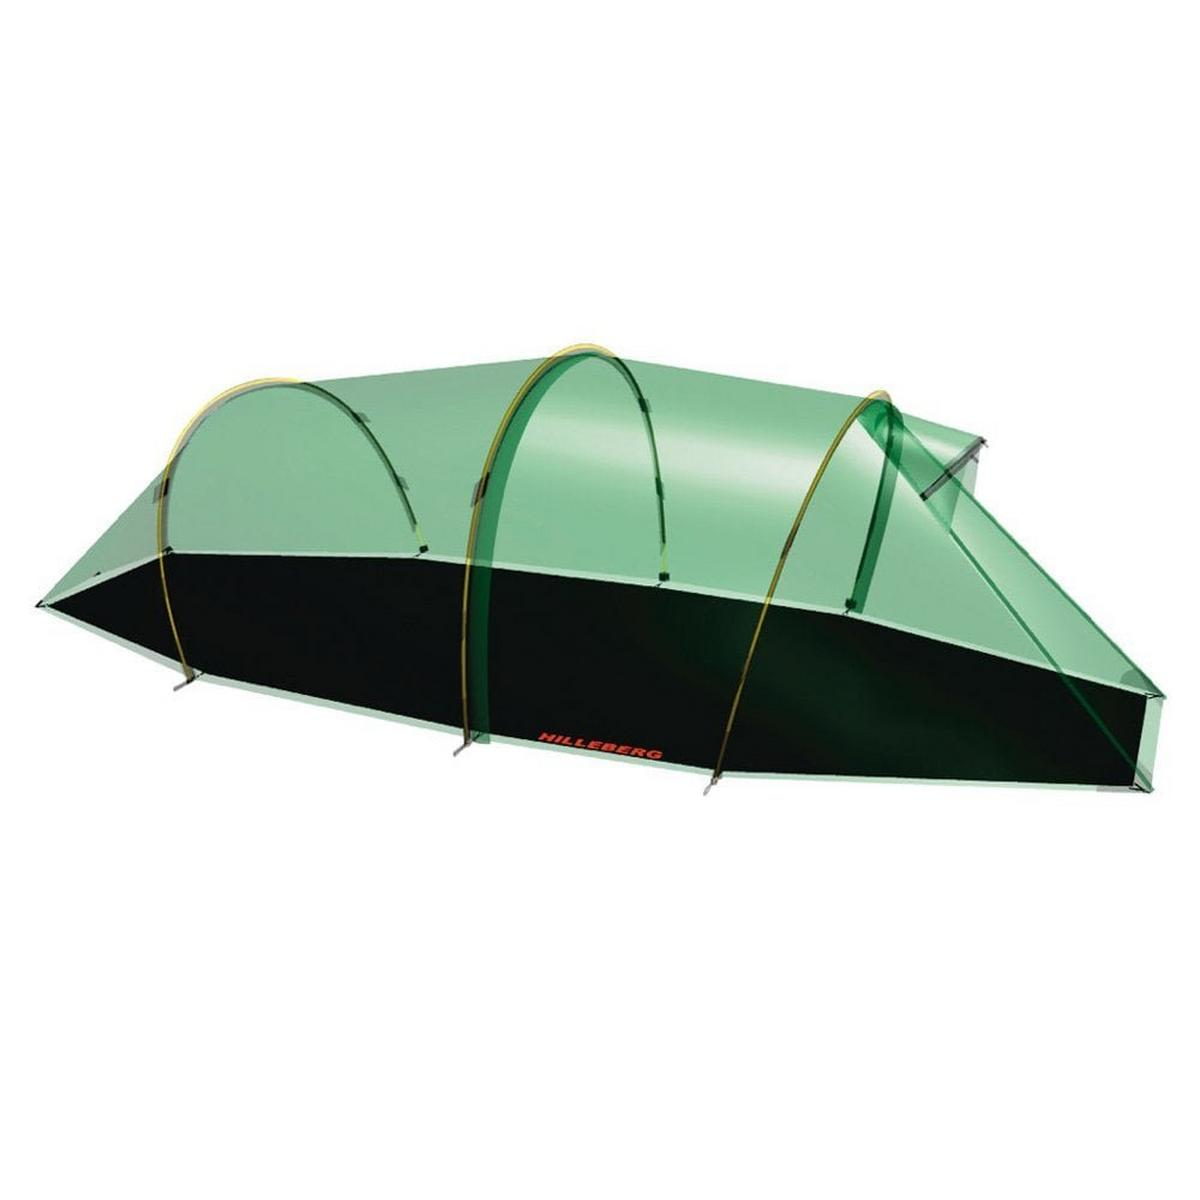 Hilleberg Tent Spare/Accessory Footprint for Nallo 2 GT